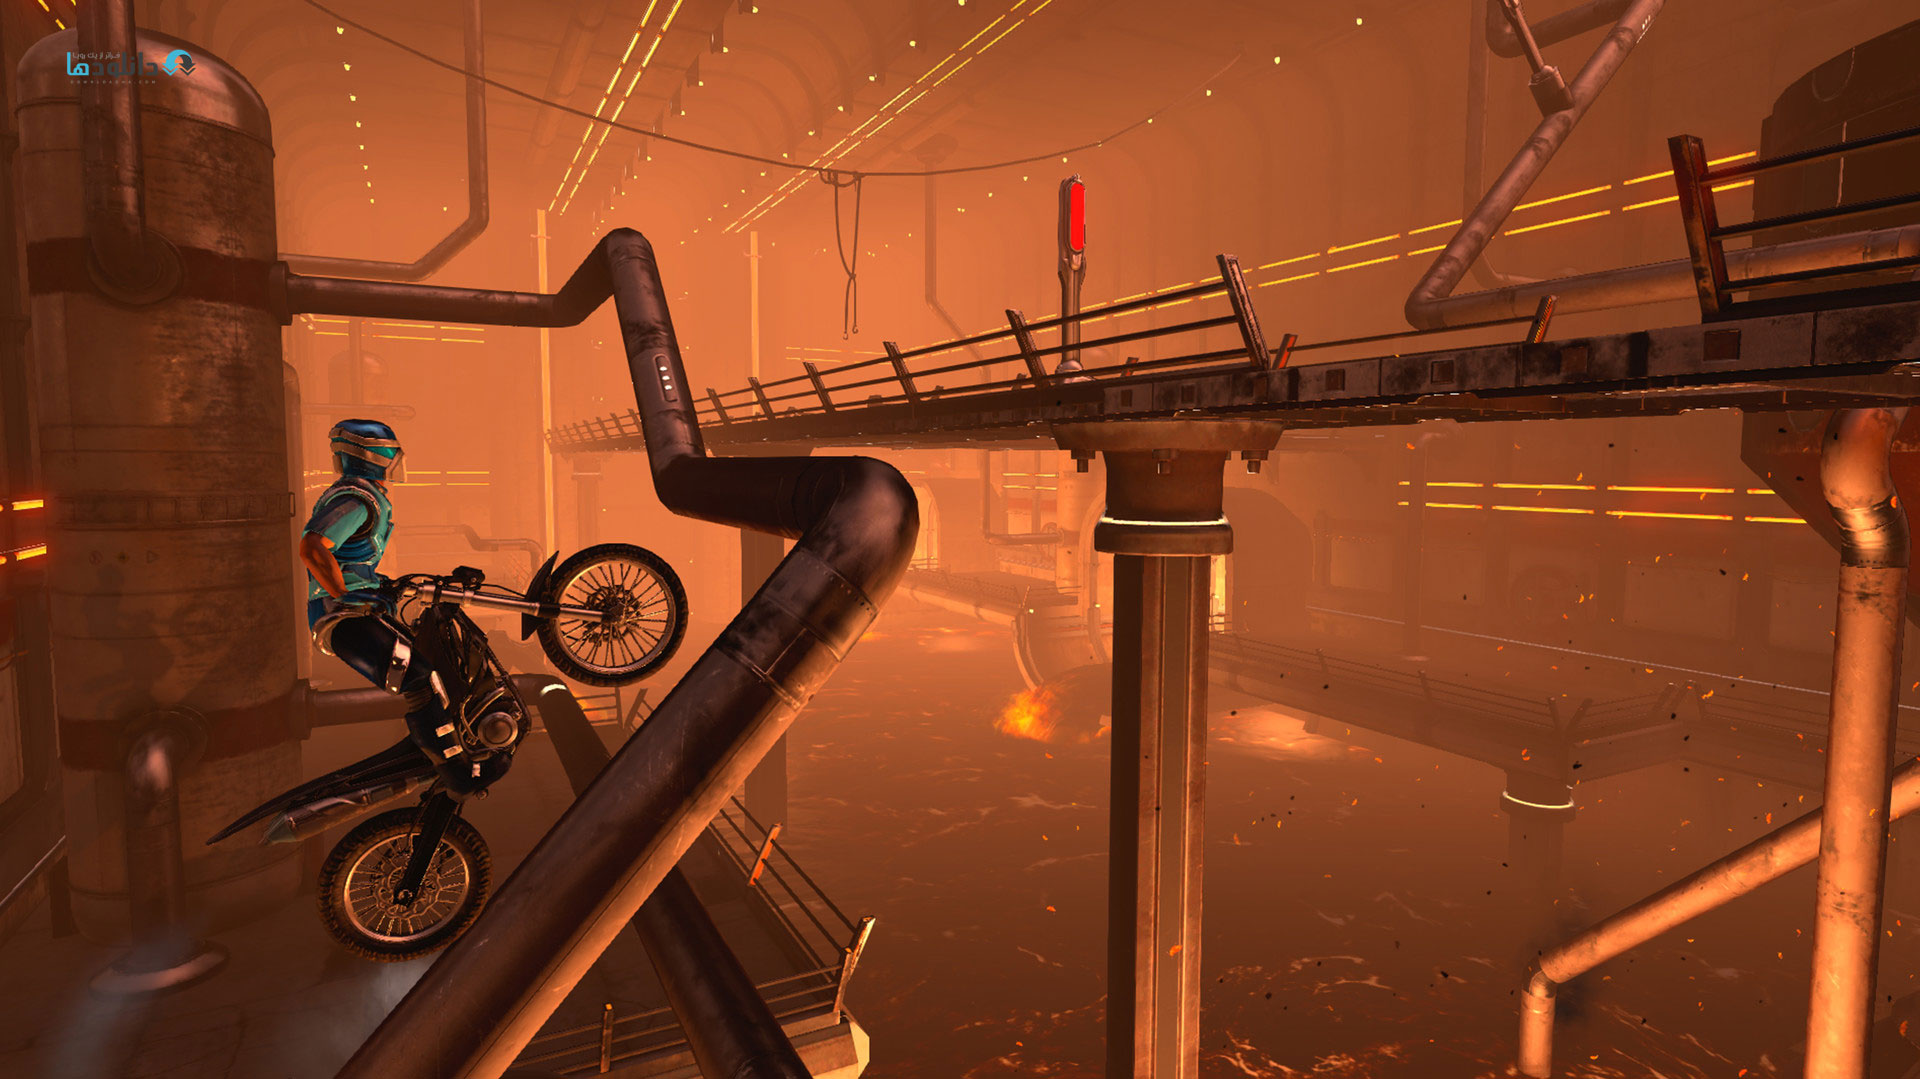 http://dl5.downloadha.com/hosein/Game/January%202015/30/Trials-Fusion-Fire-in-the-Deep-screenshots-04-large.jpg